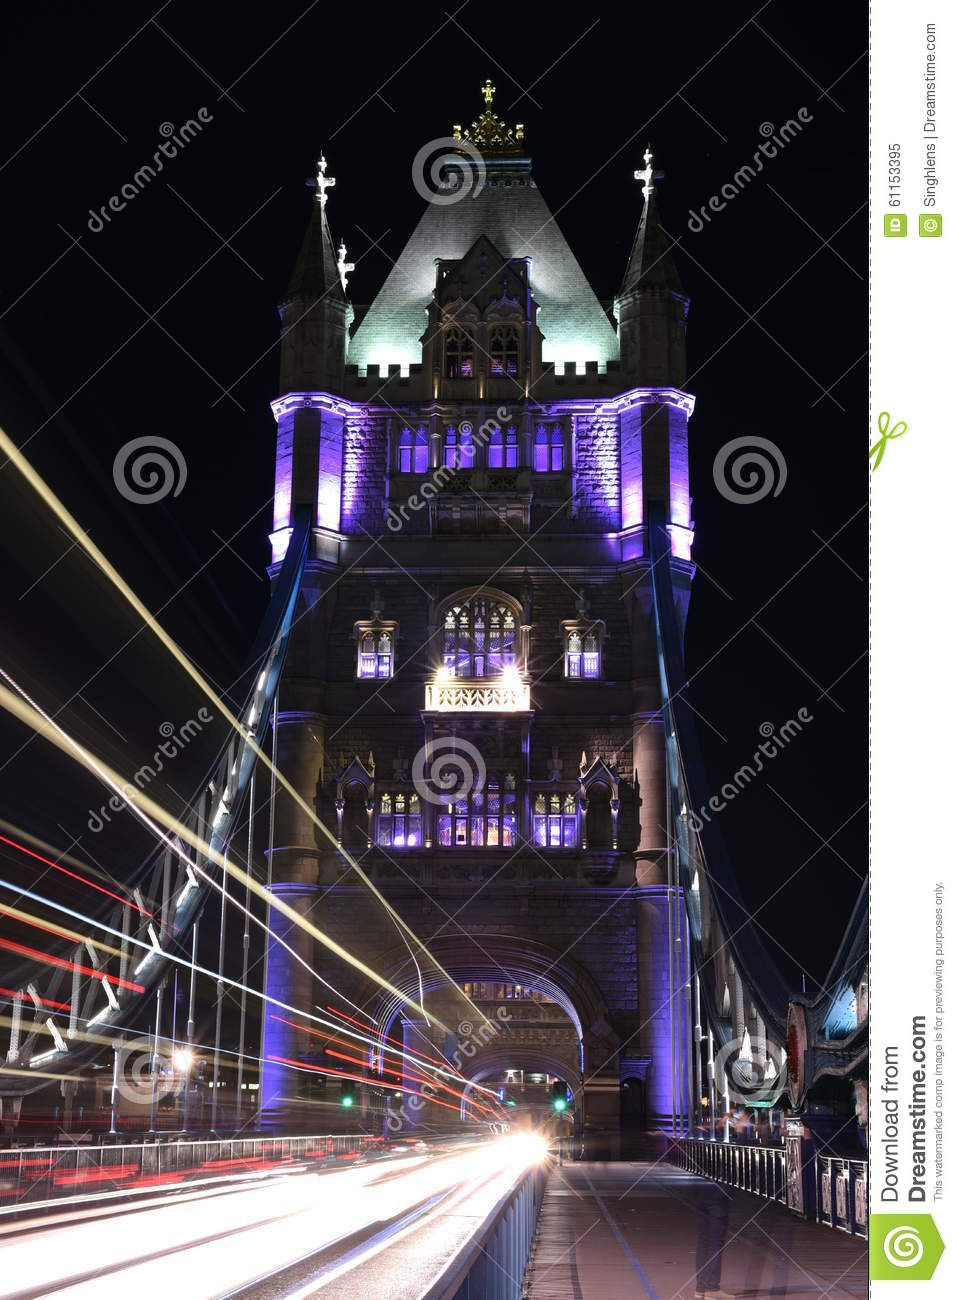 London, UK, Tower Bridge at night with light trails of buses and cars on the bridge,long exposure shot in low light